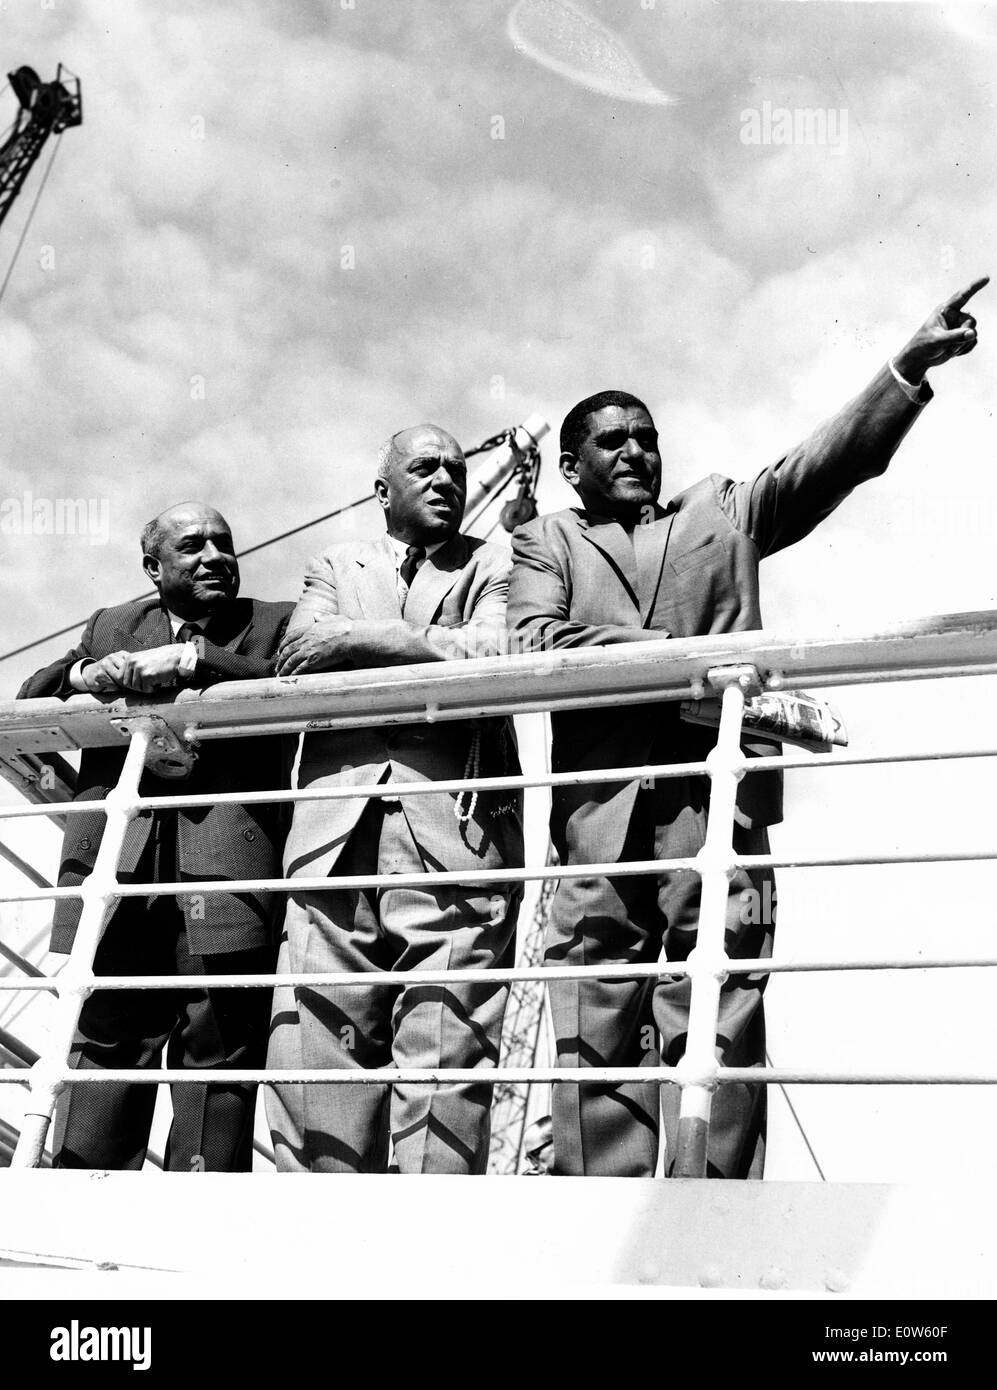 Jul 14, 1961; London, UK; The three Bahreini Arabs were sentenced in Bahrein in 1956 on charges of attempting to overthrow the Government and to assissinate the Ruler, Sheikh Sulman Bin Hamad al Khalifah. Leaning on the rails of the liner Warwick Castle when she arrived at King George V Dock are the three Bahreini Arabs (L-R) ABDUL RAHMAN BAKER, ABDUL ALI ALAIWAT and ABDUL AZIZ SHAMLAN. - Stock Image